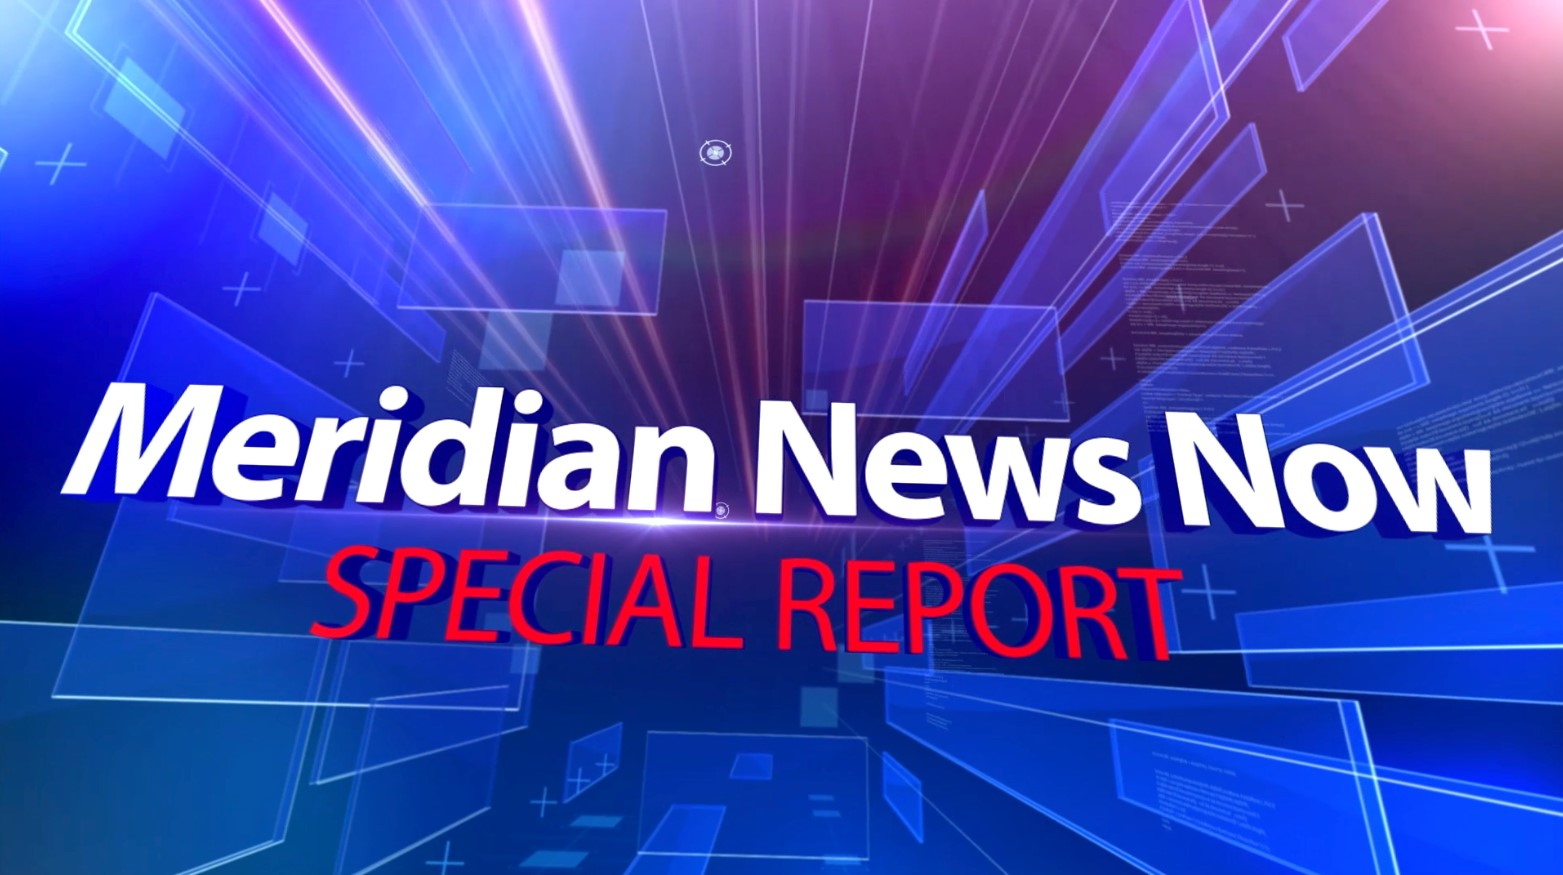 Meridian News Now: Special Report